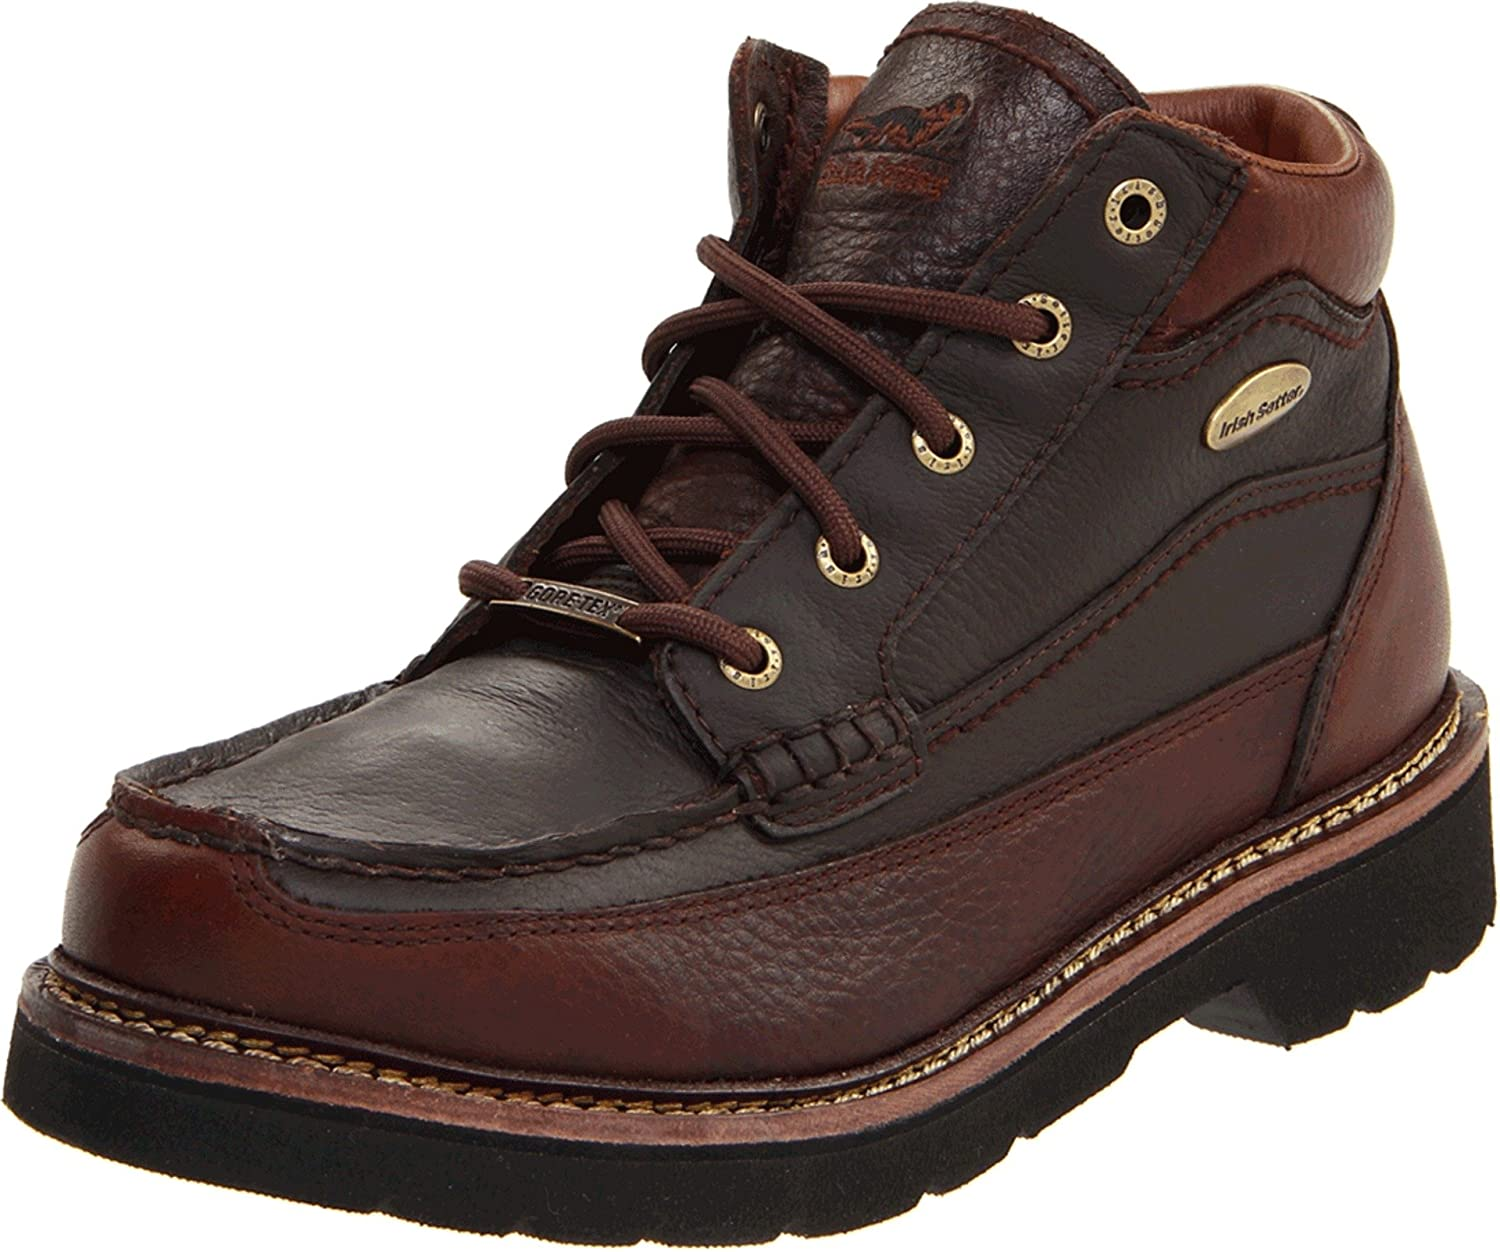 Brown Waterproof Casual Shoe Review